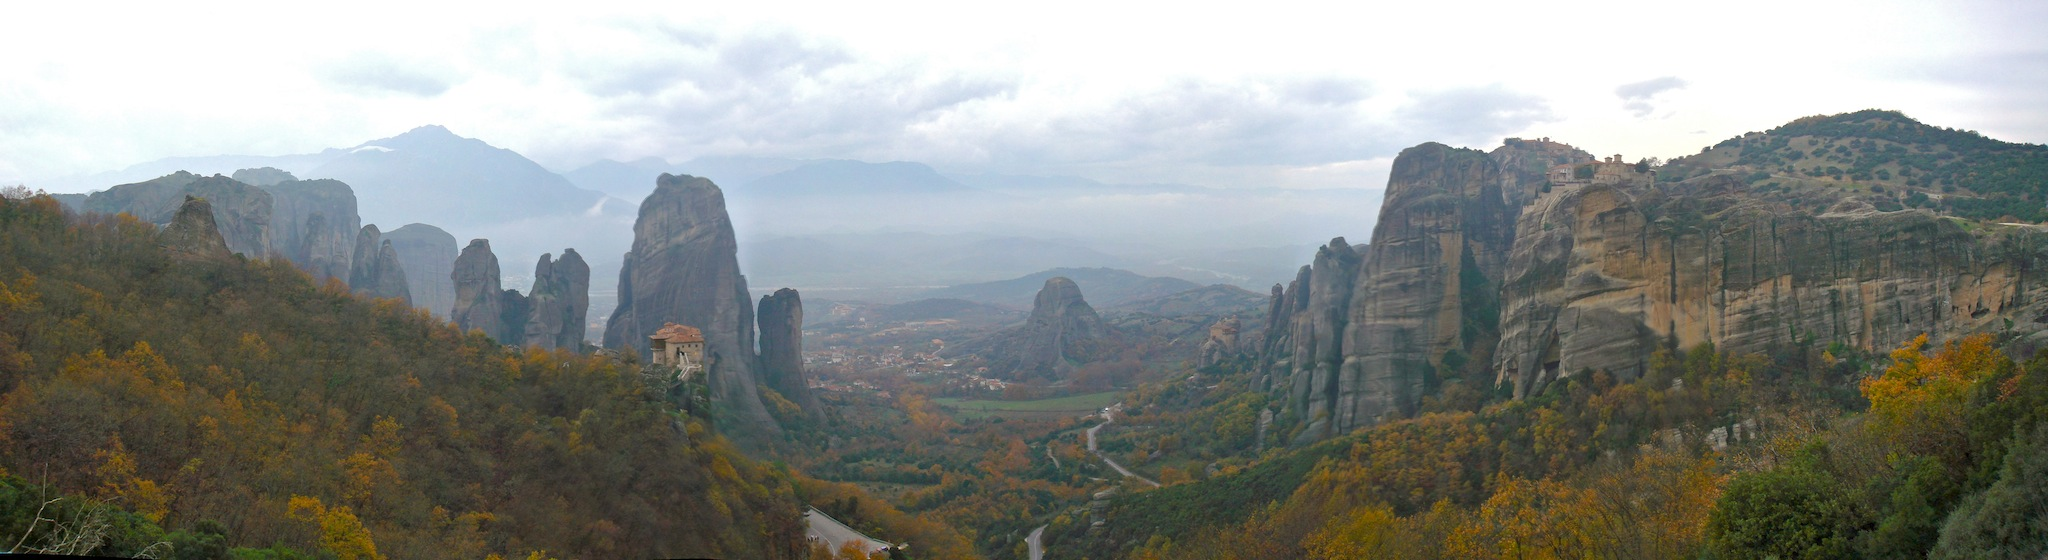 Meteora_valley,_Meteora,_Greece